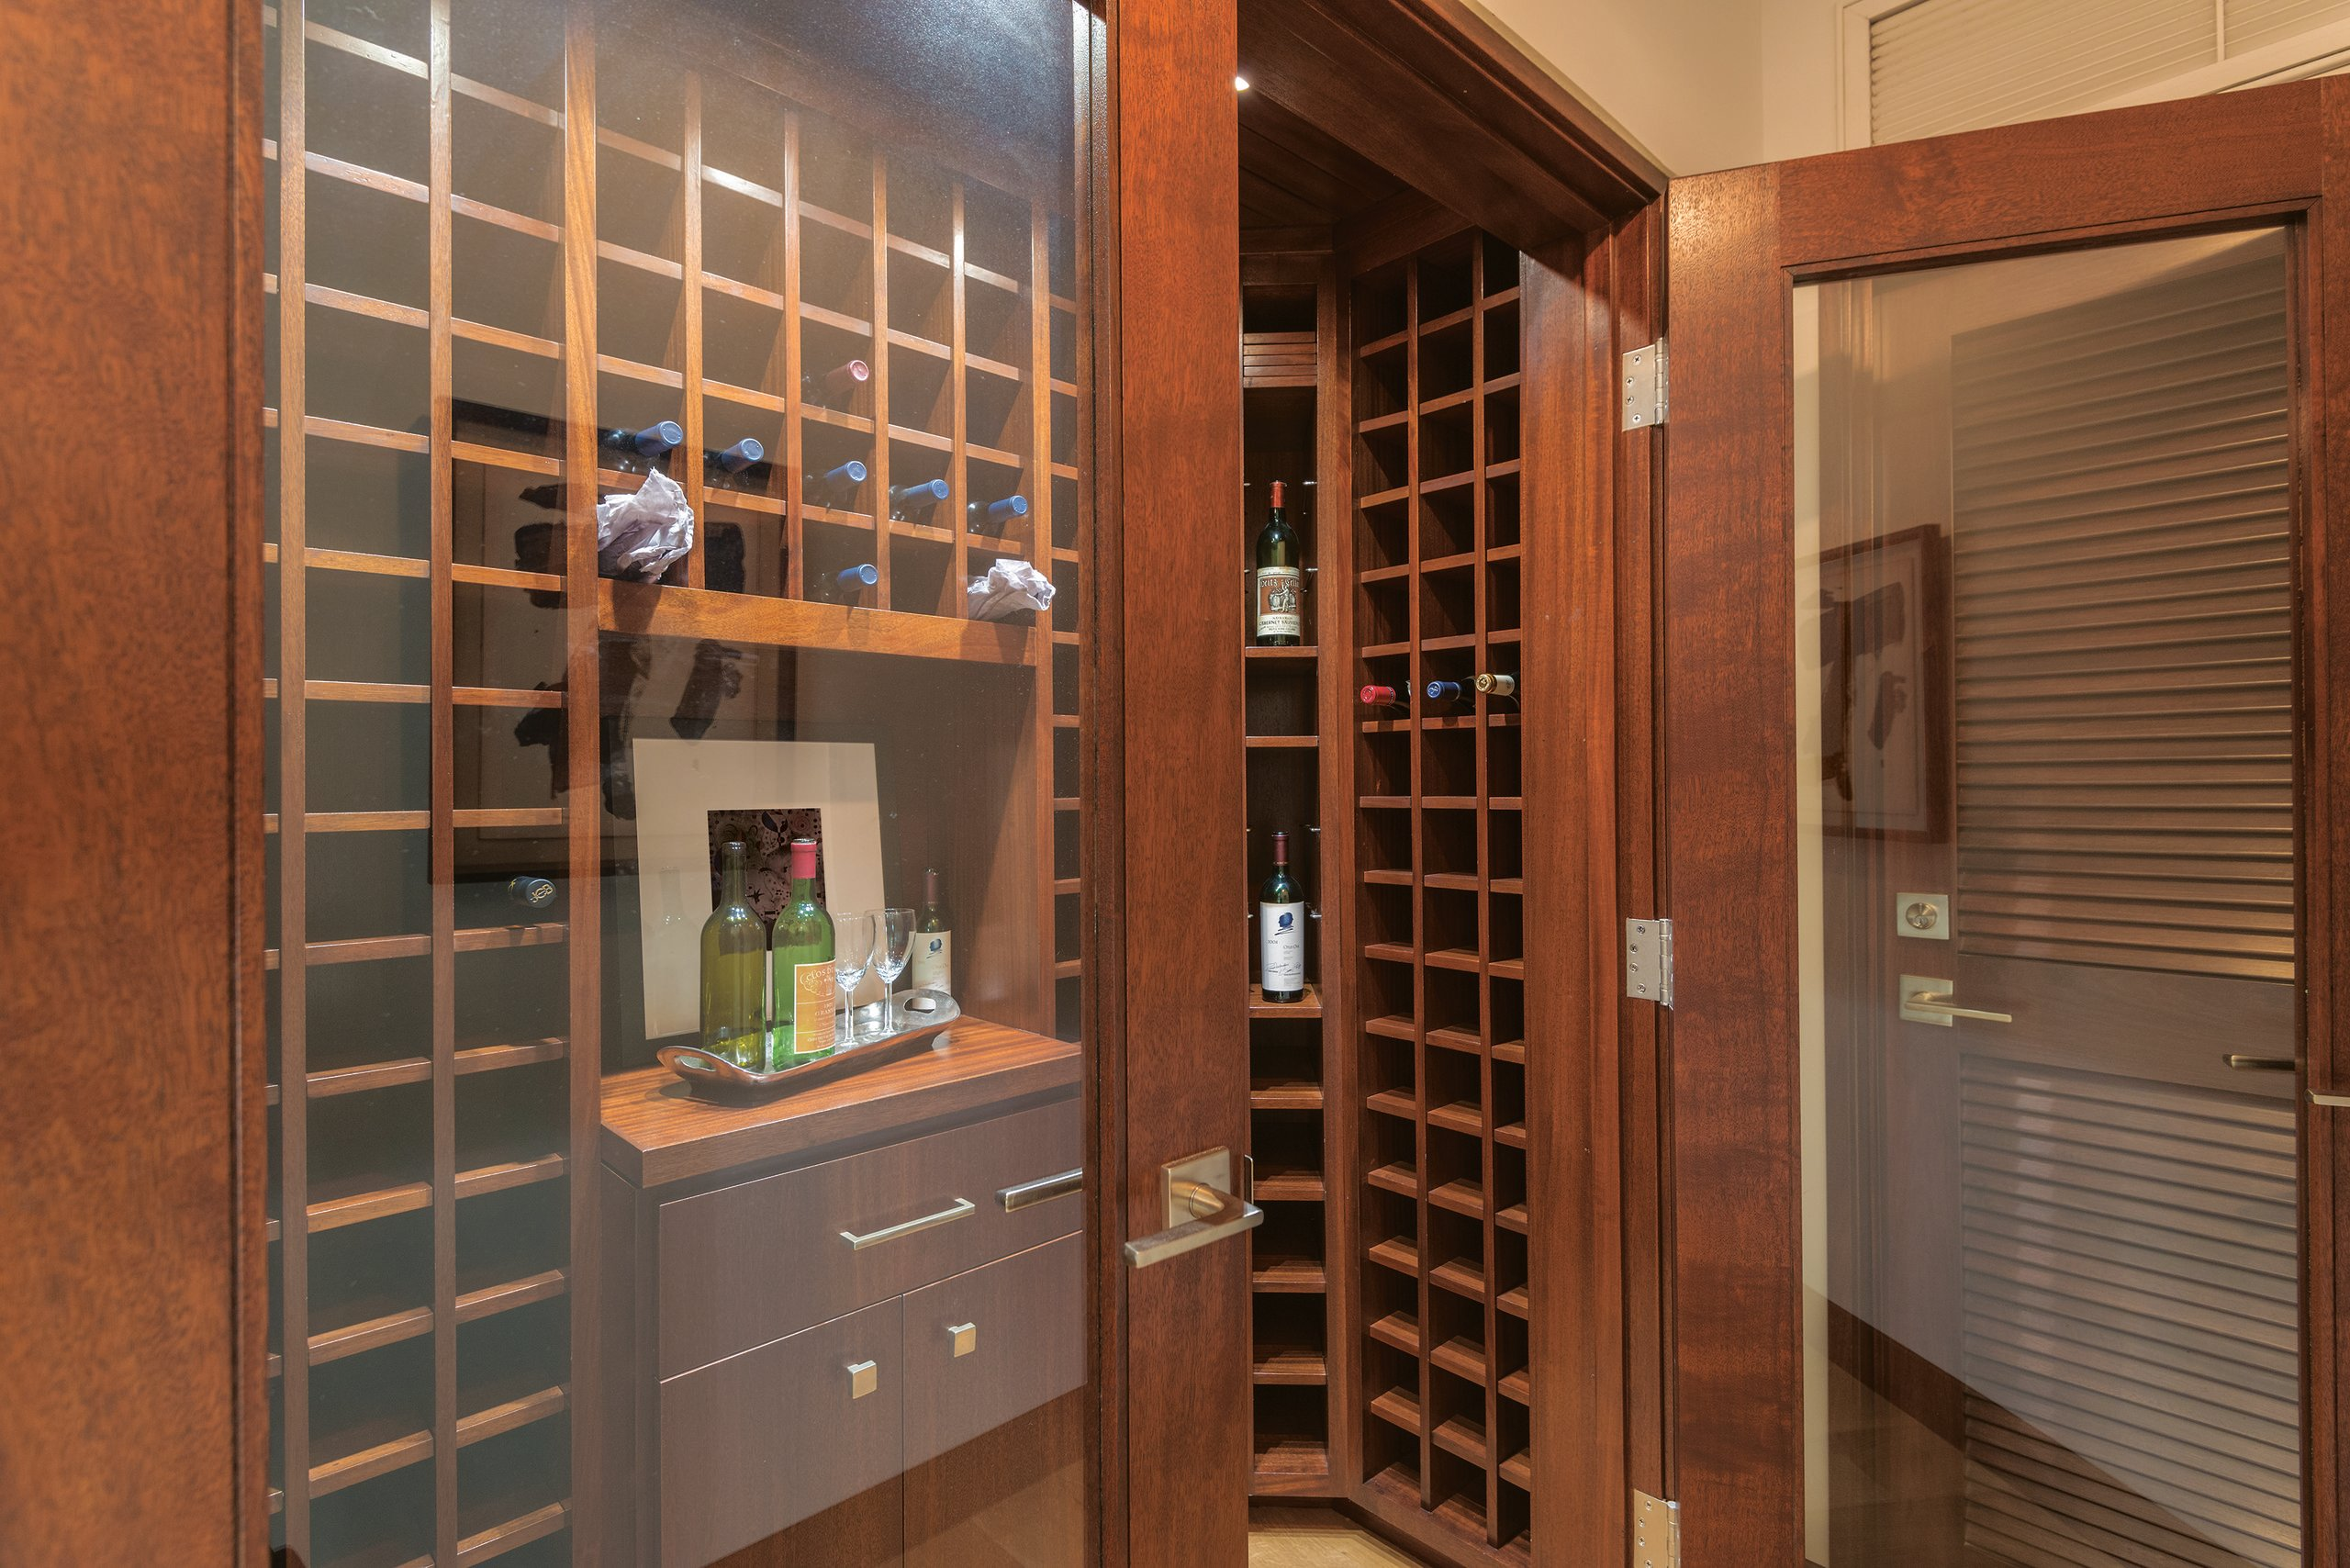 Coldwell Banker Global Luxury Wine Cellar